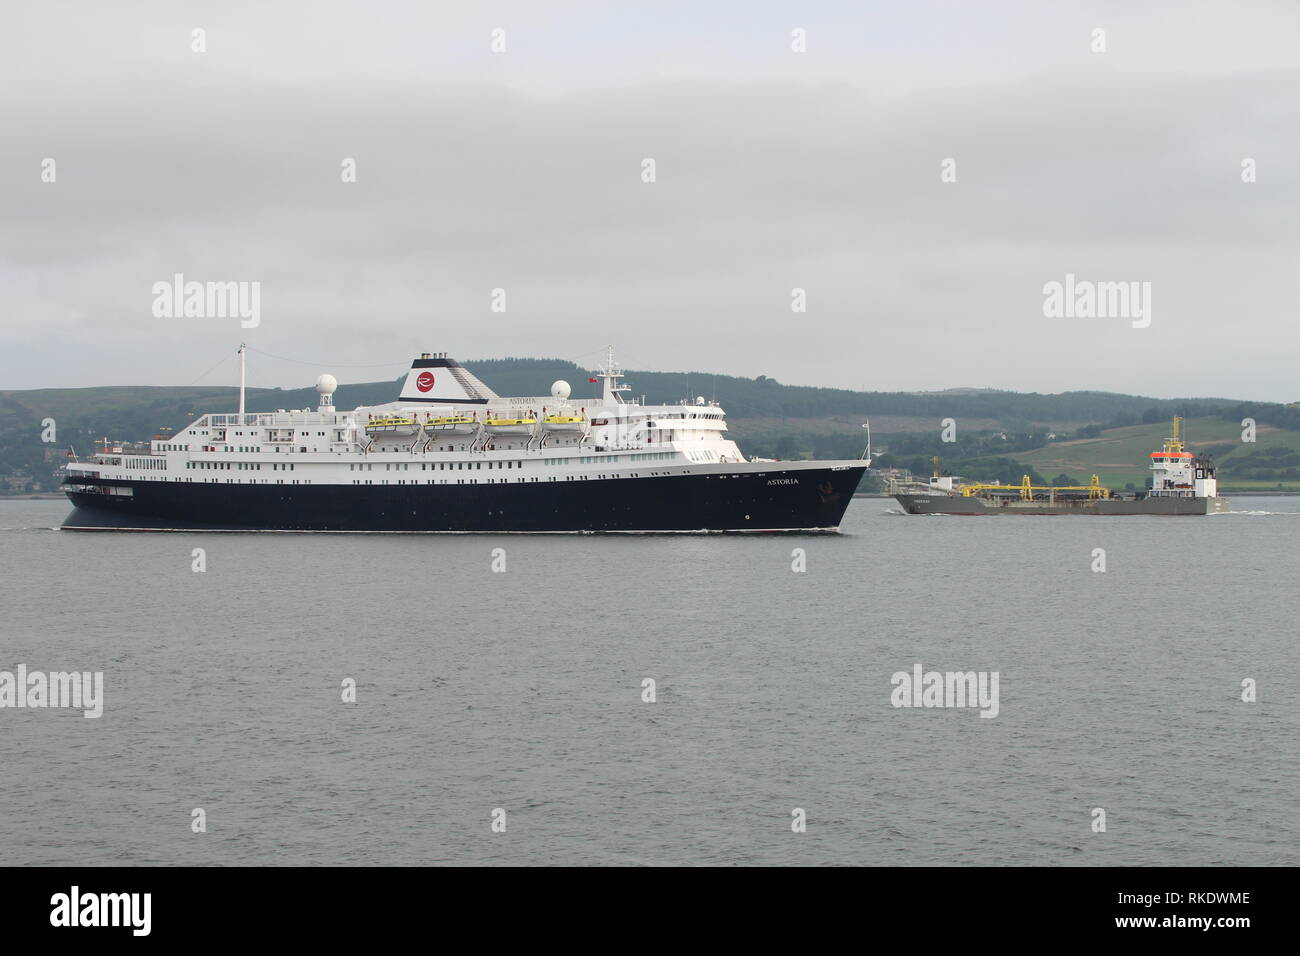 The cruise ship MV Astoria heads in to Greenock Ocean Terminal, as the dredger Freeway passes in the opposite direction. - Stock Image